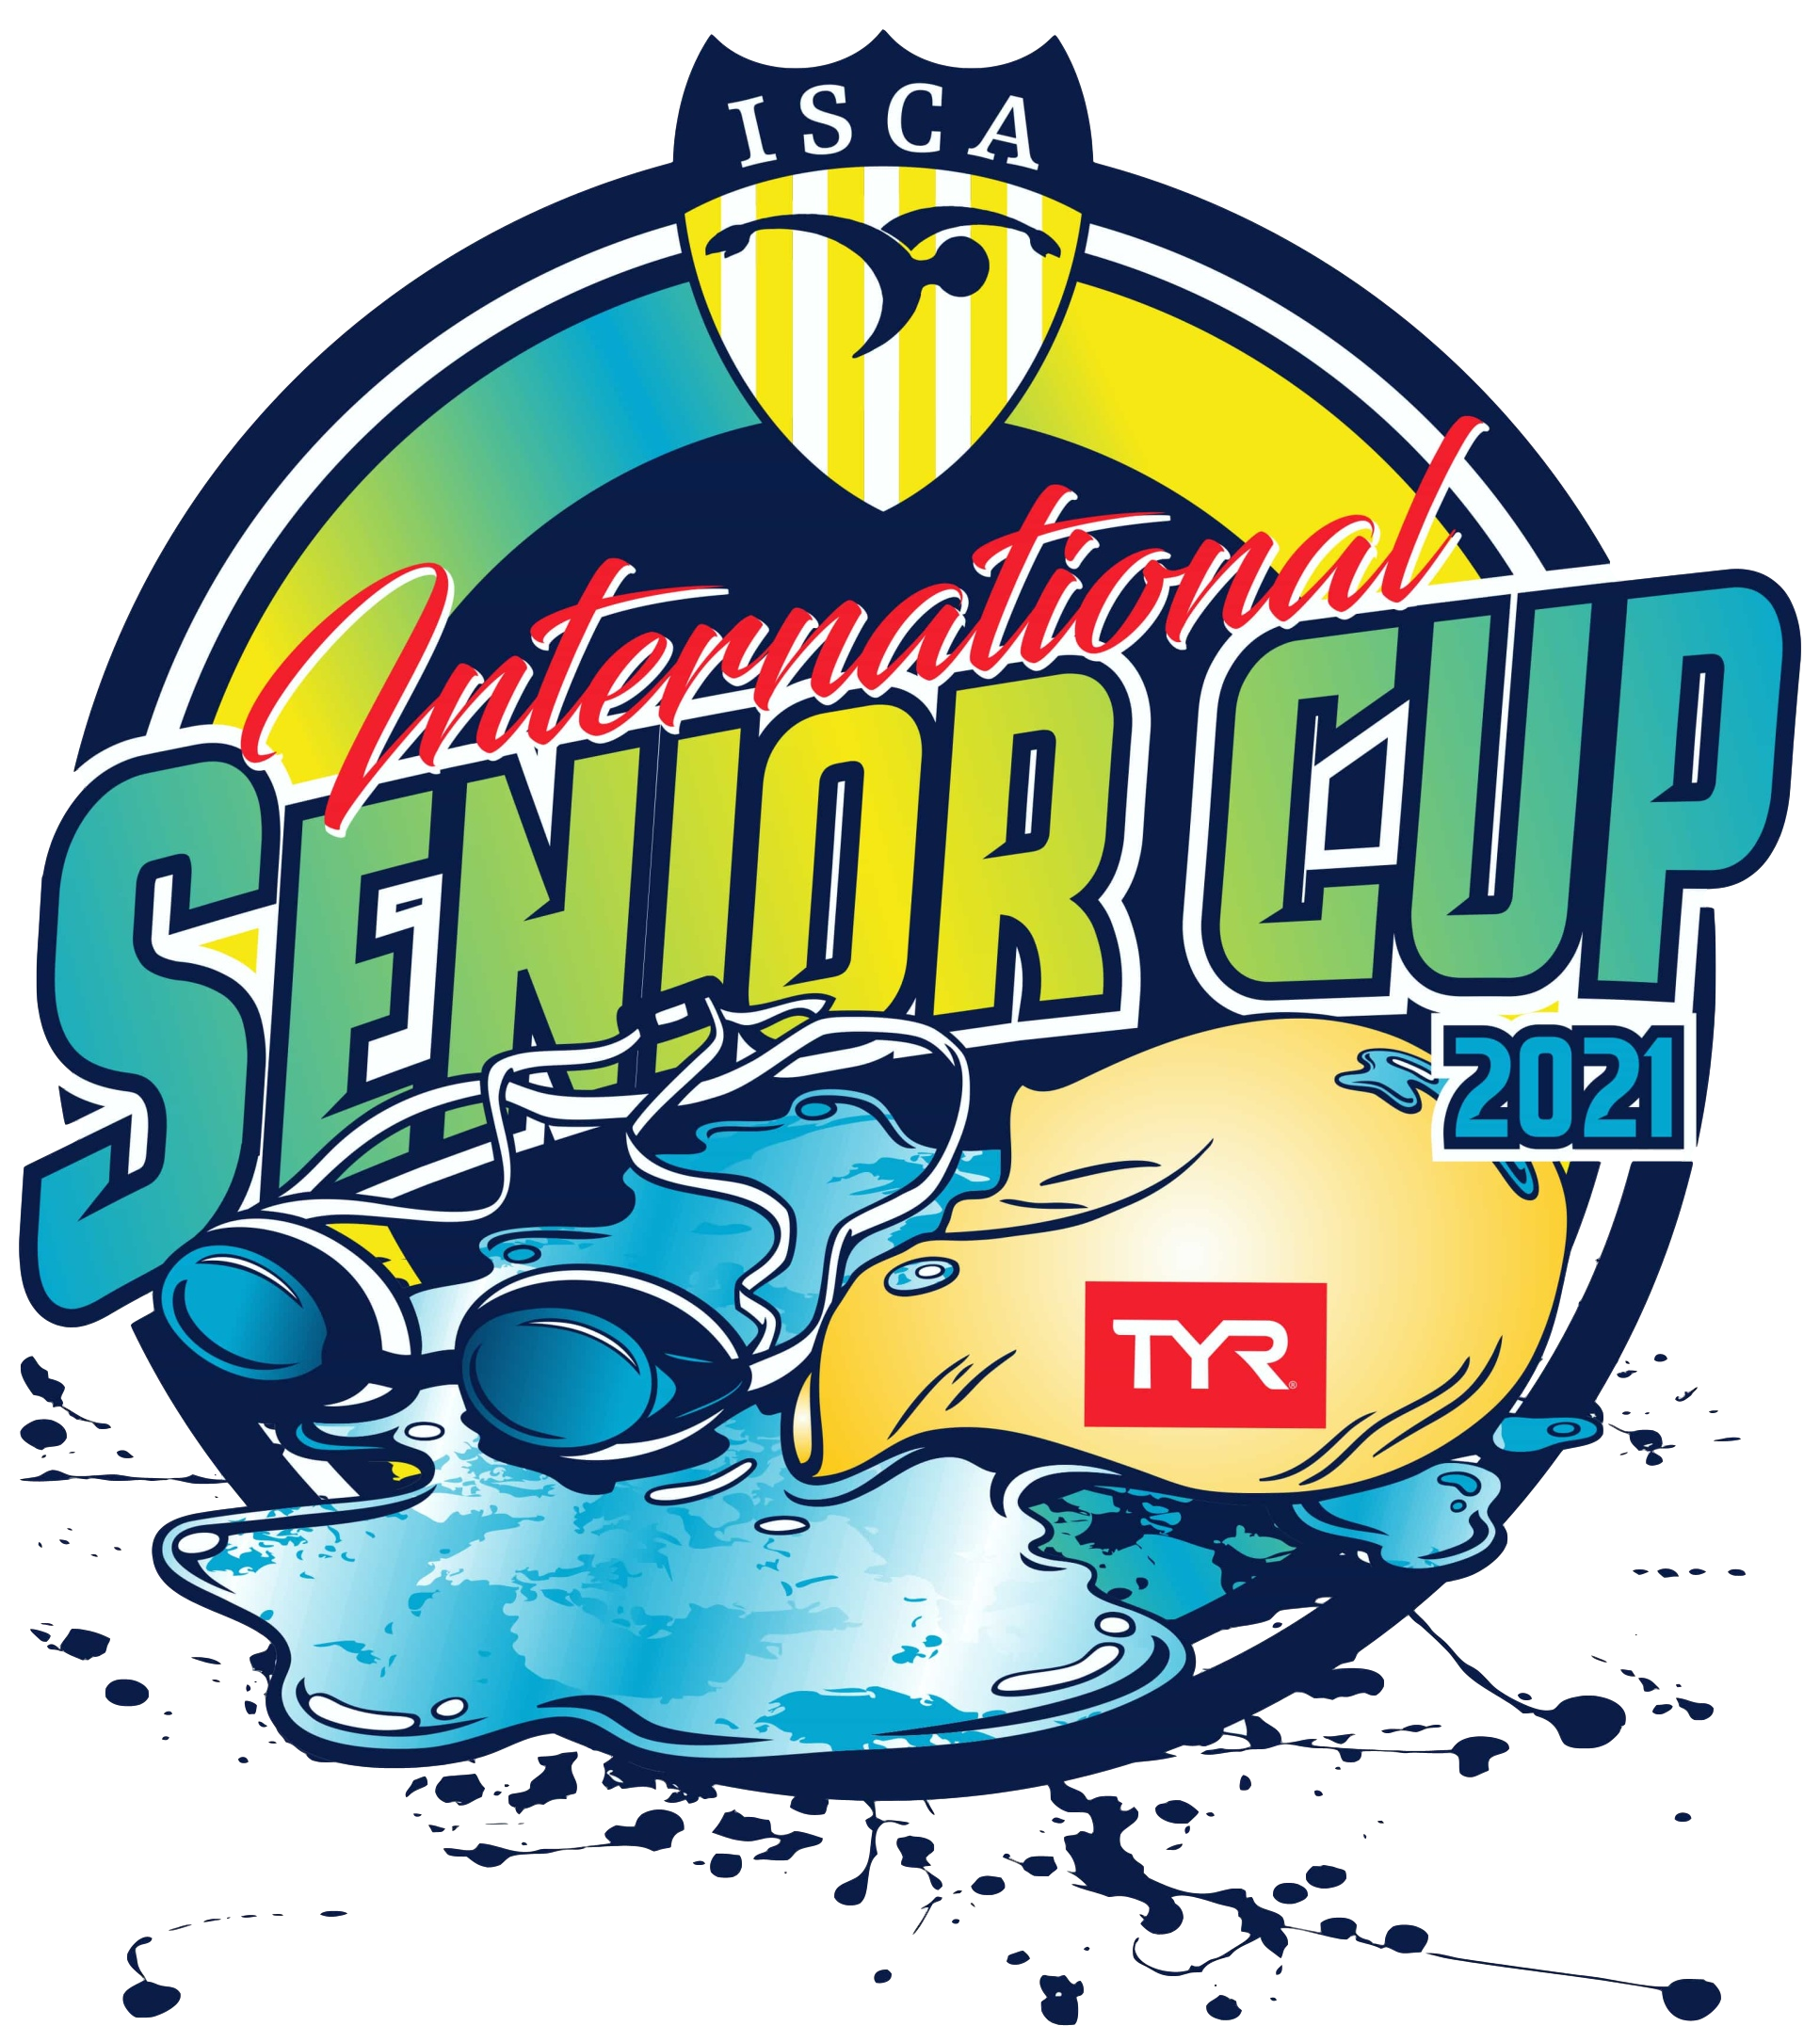 ISCA International Senior Cup 2021 logo